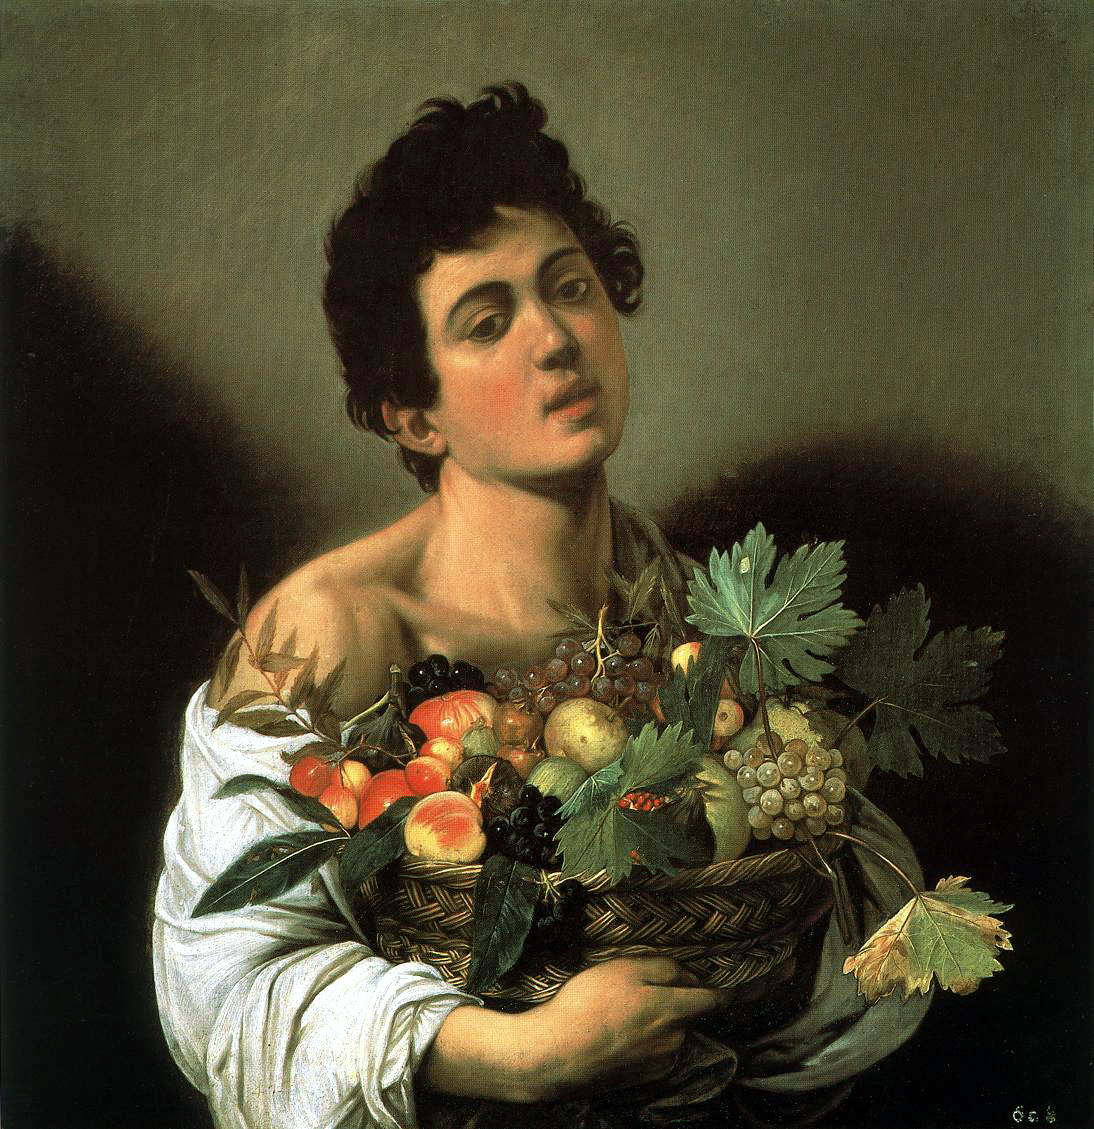 Boy with a Basket of Fruit, c. 1593. Oil on canvas, 67 x 53 cm. Galleria Borghese, Rome.